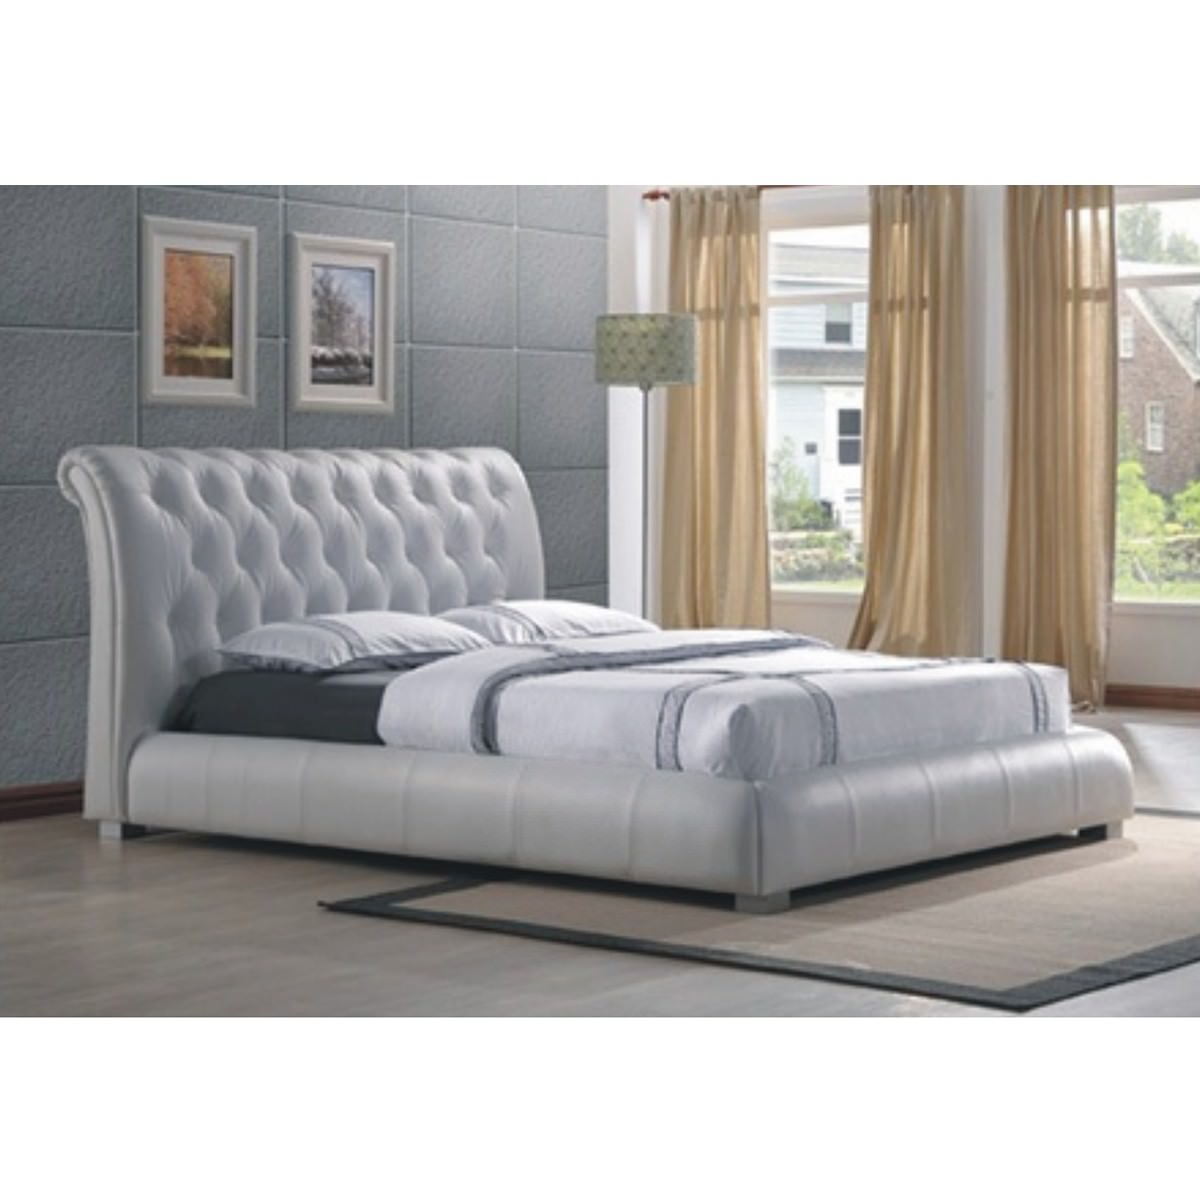 Messini Leather Bed, Queen, White